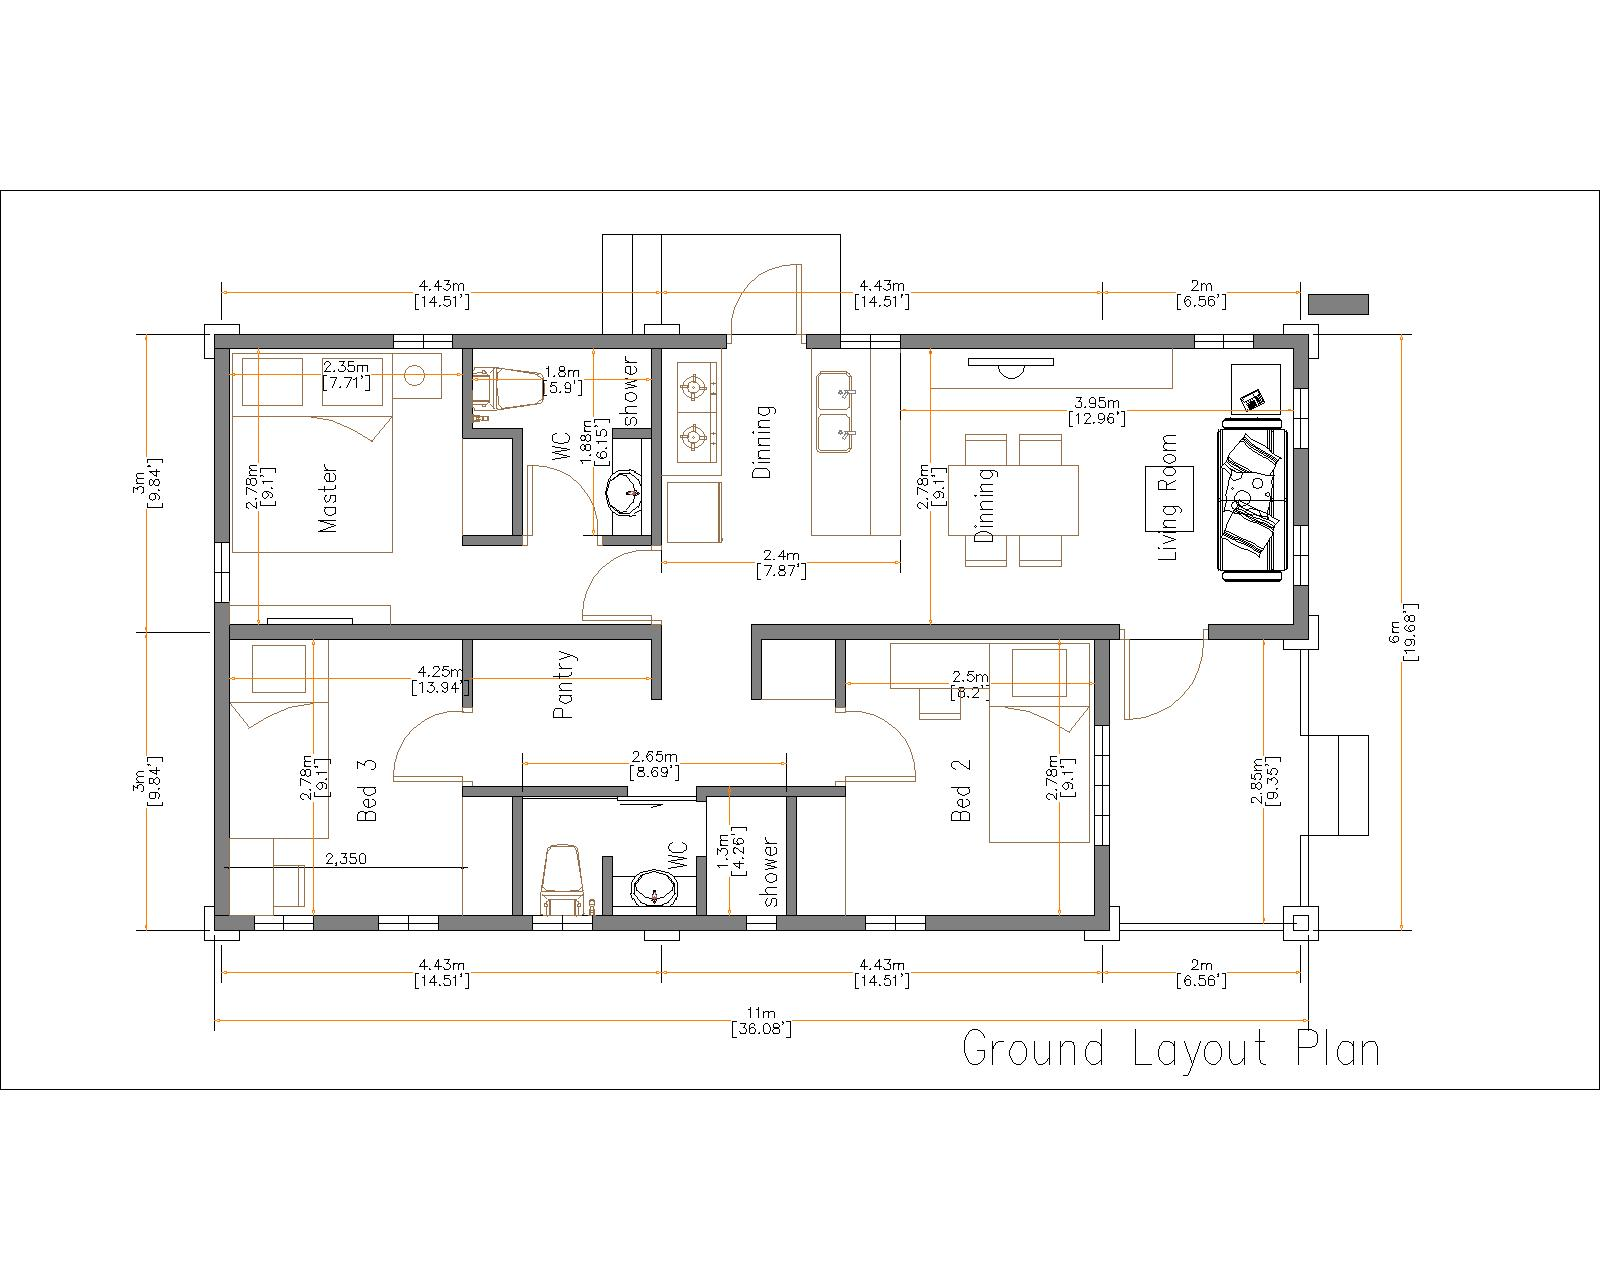 3 Bed 6x11m-House plans